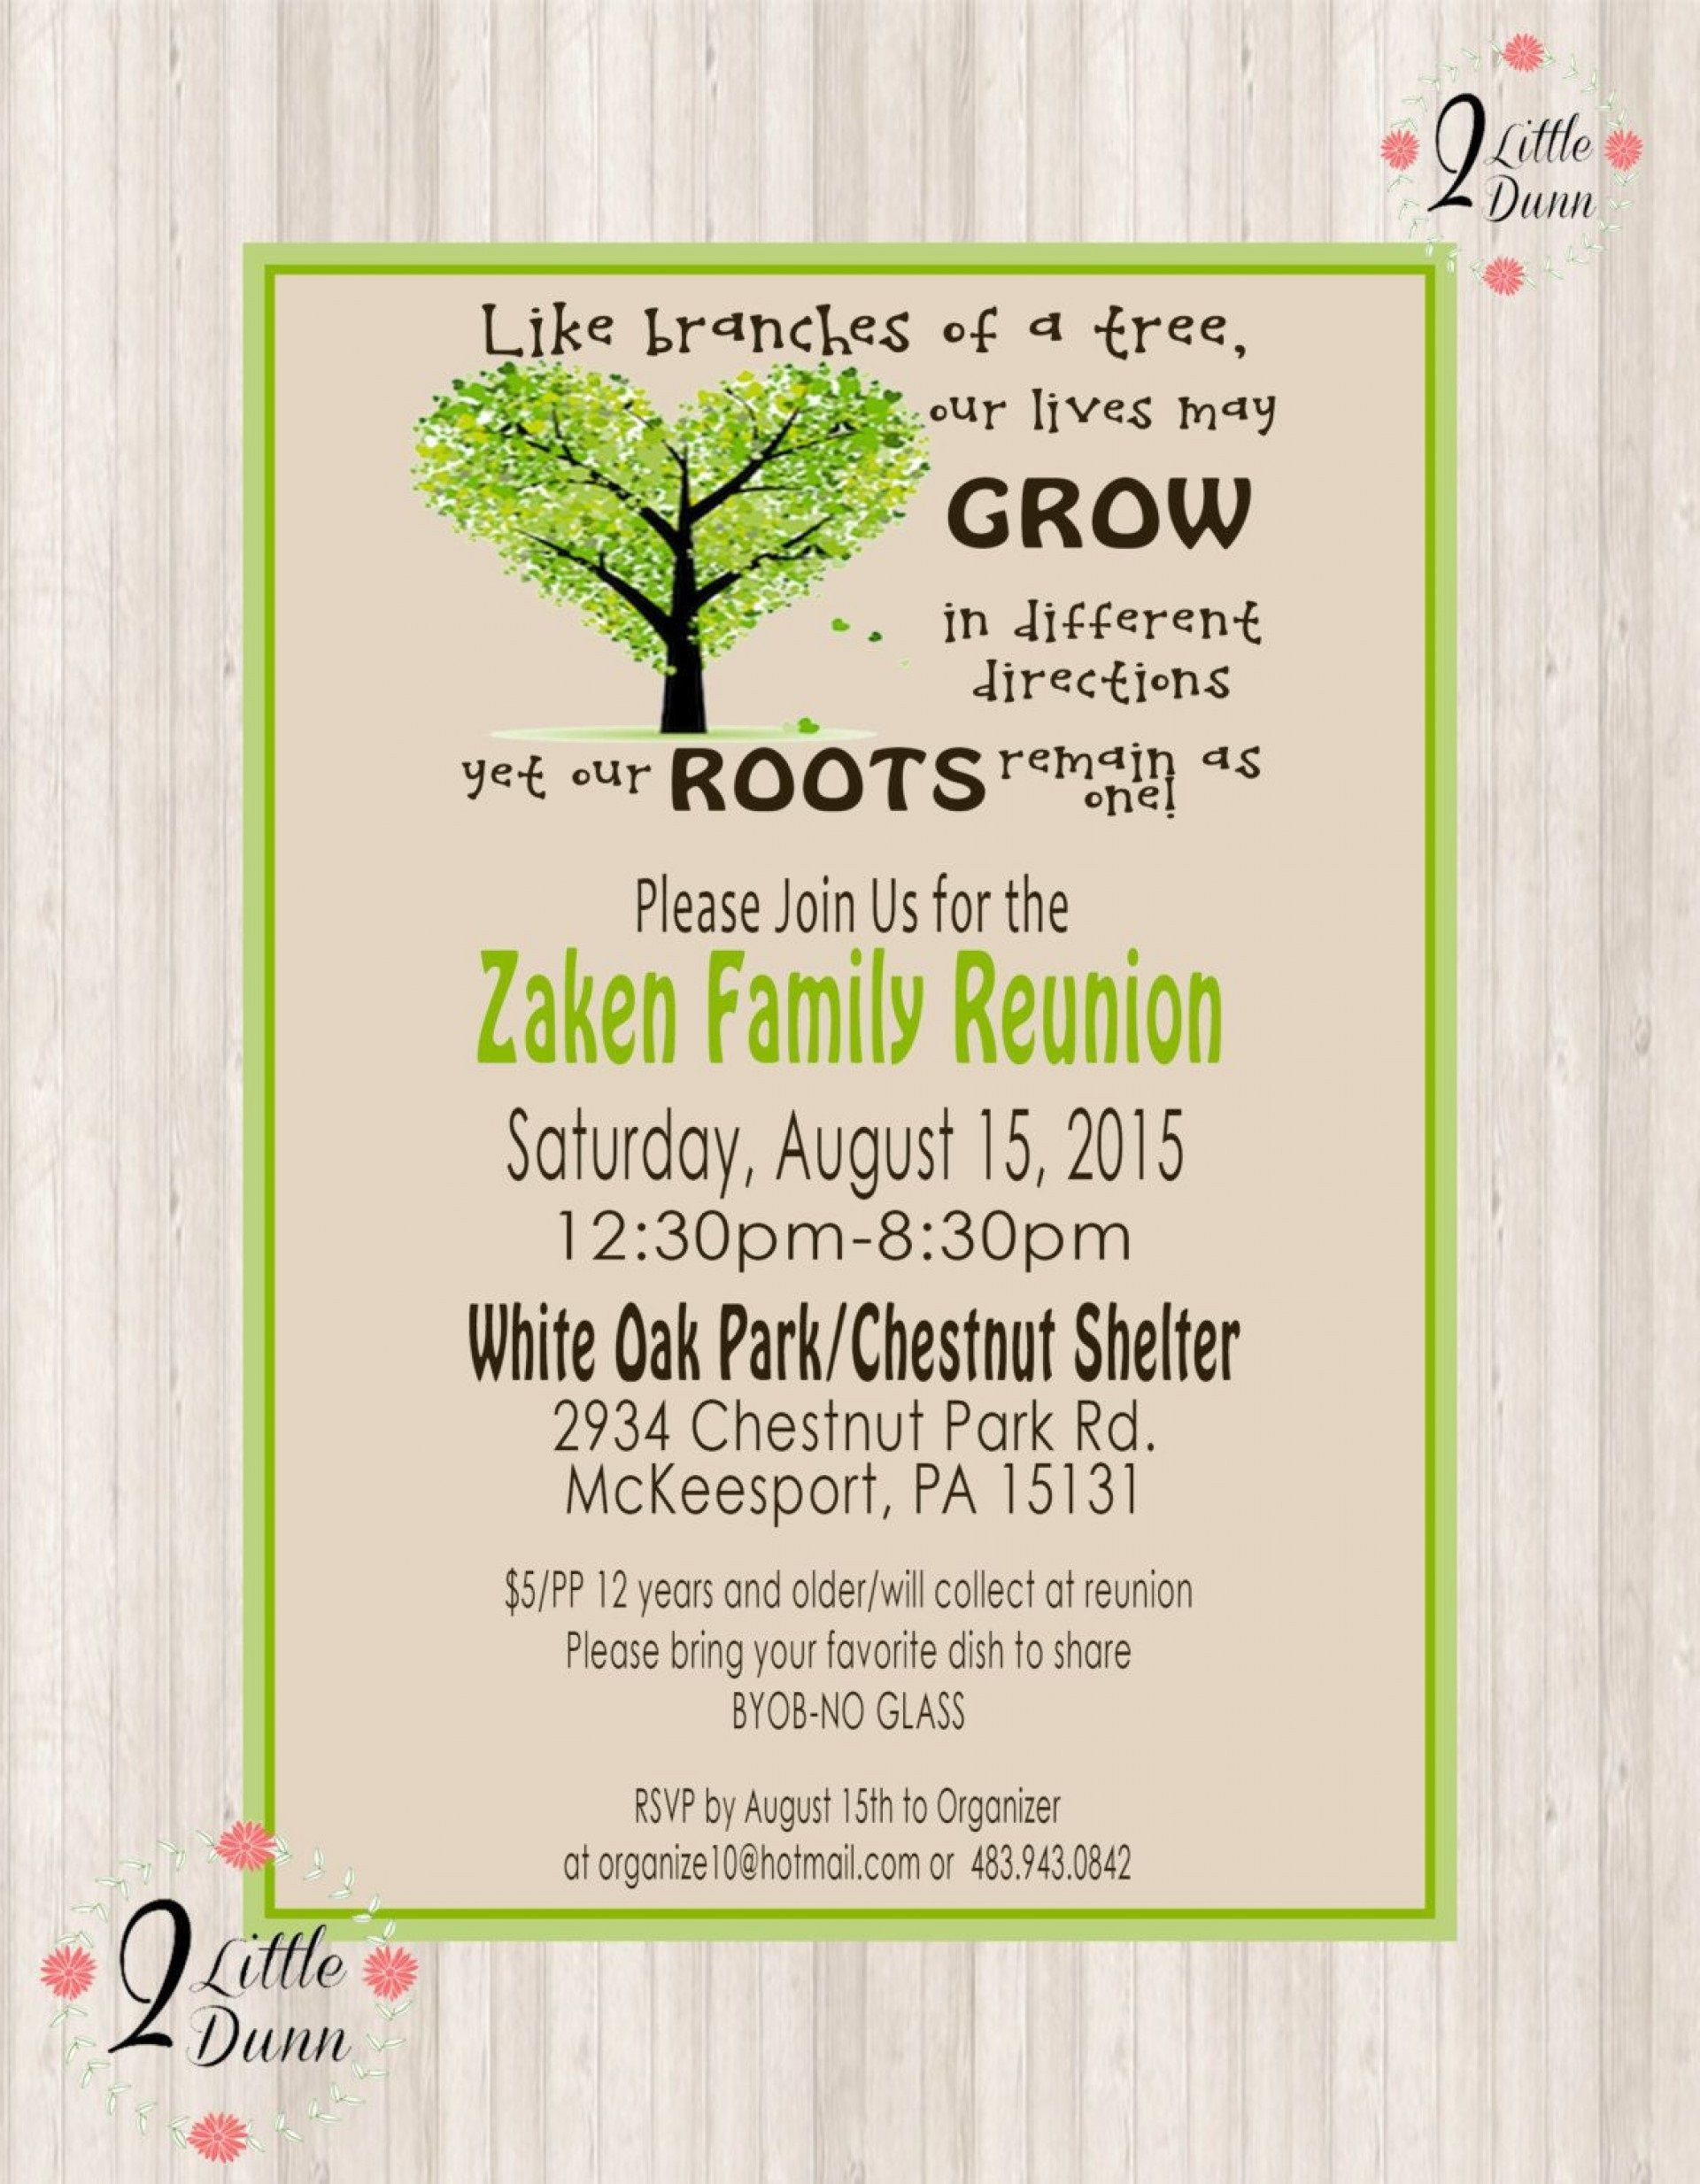 009 Remarkable Free Downloadable Family Reunion Flyer Template Photo  Templates1920